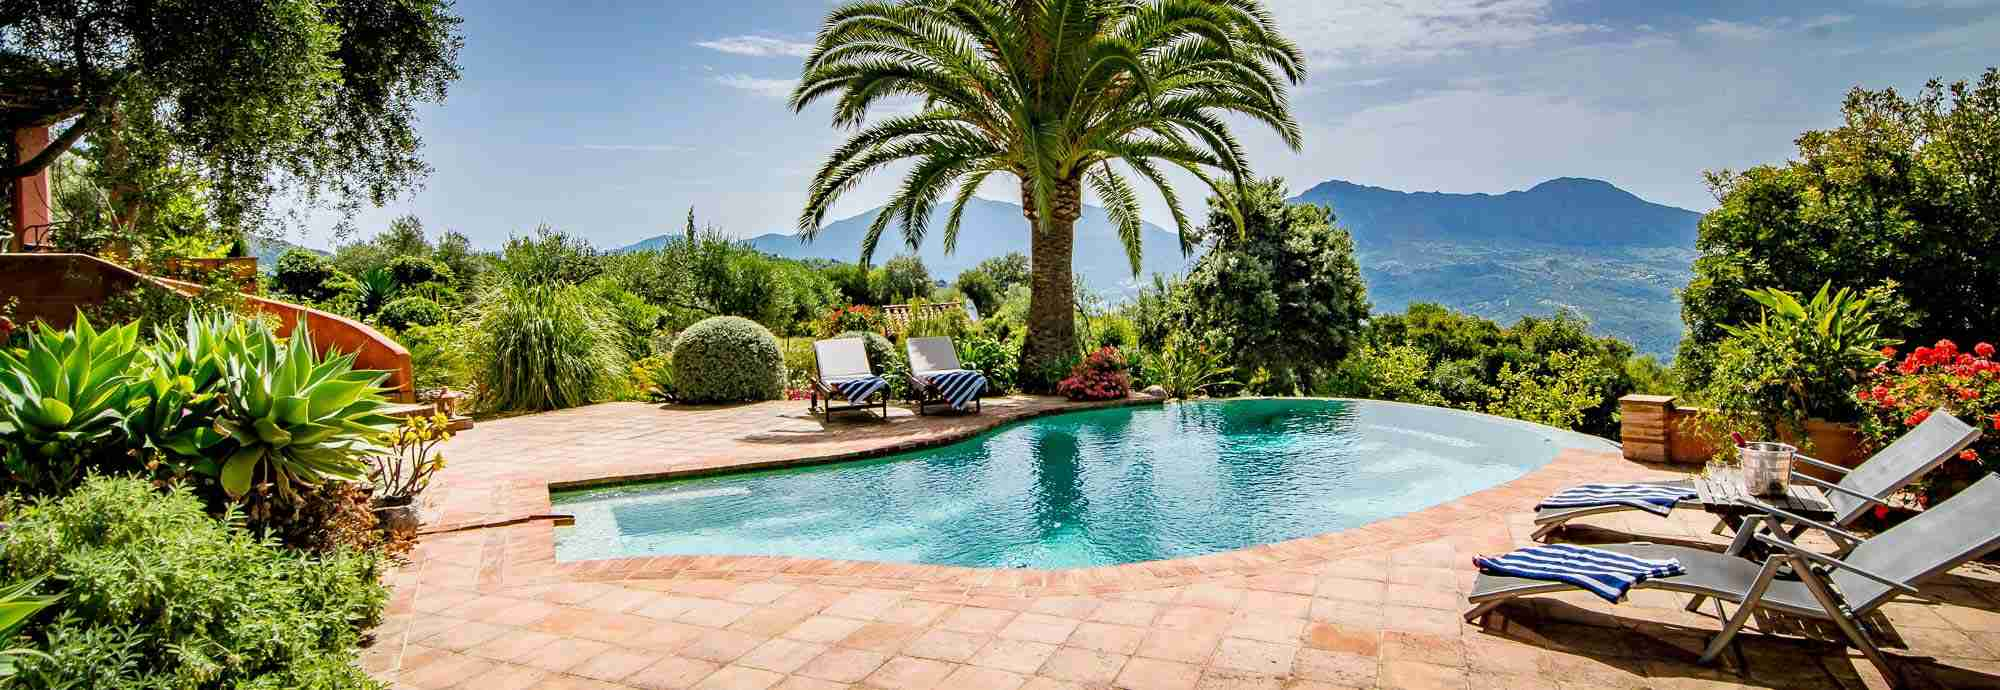 Large Holiday  Villas in Spain with Pools